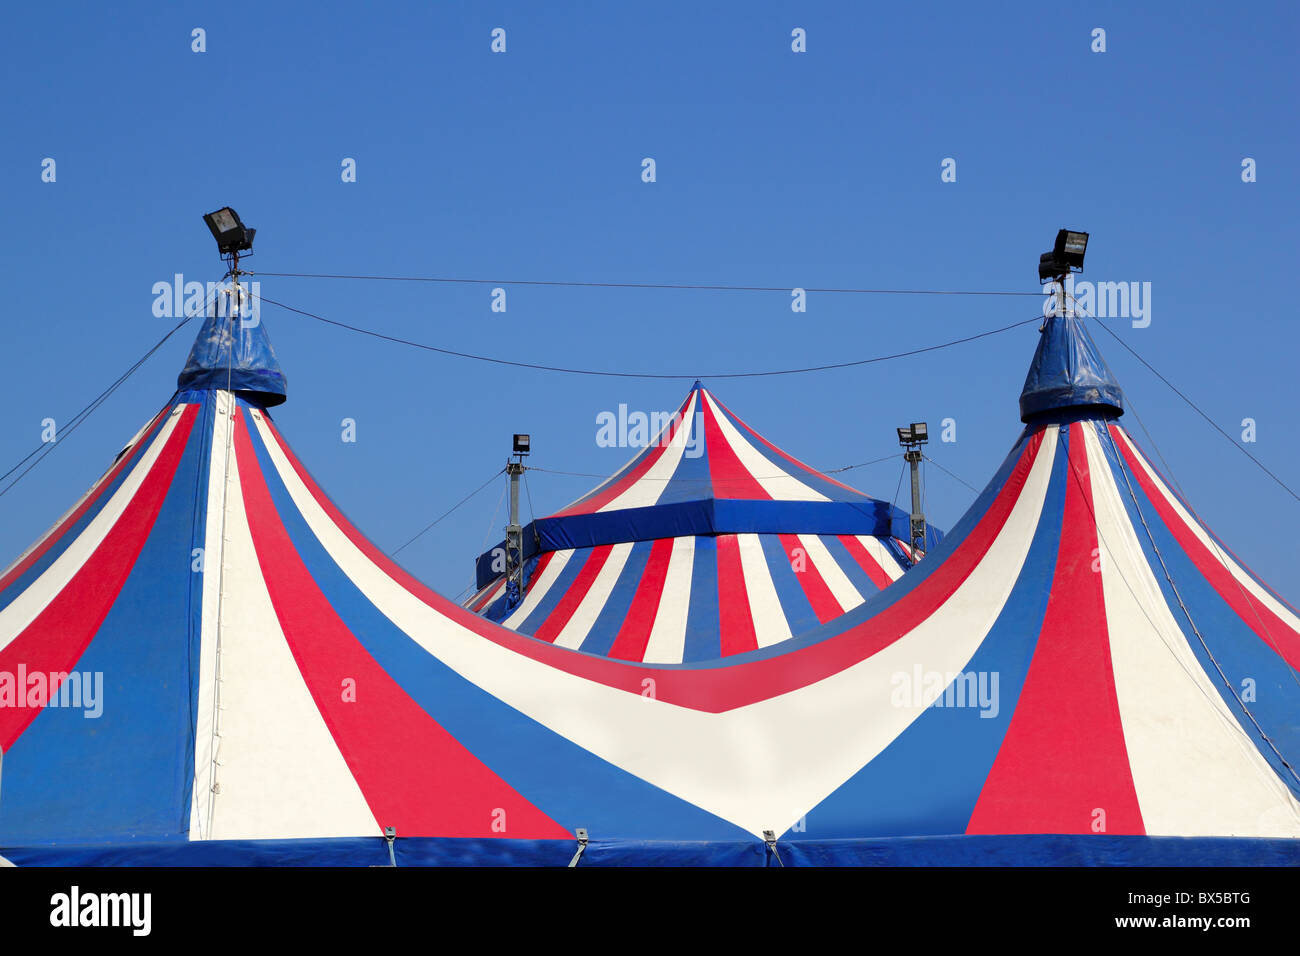 Circus tent under blue sky colorful stripes red white & Circus tent under blue sky colorful stripes red white Stock Photo ...